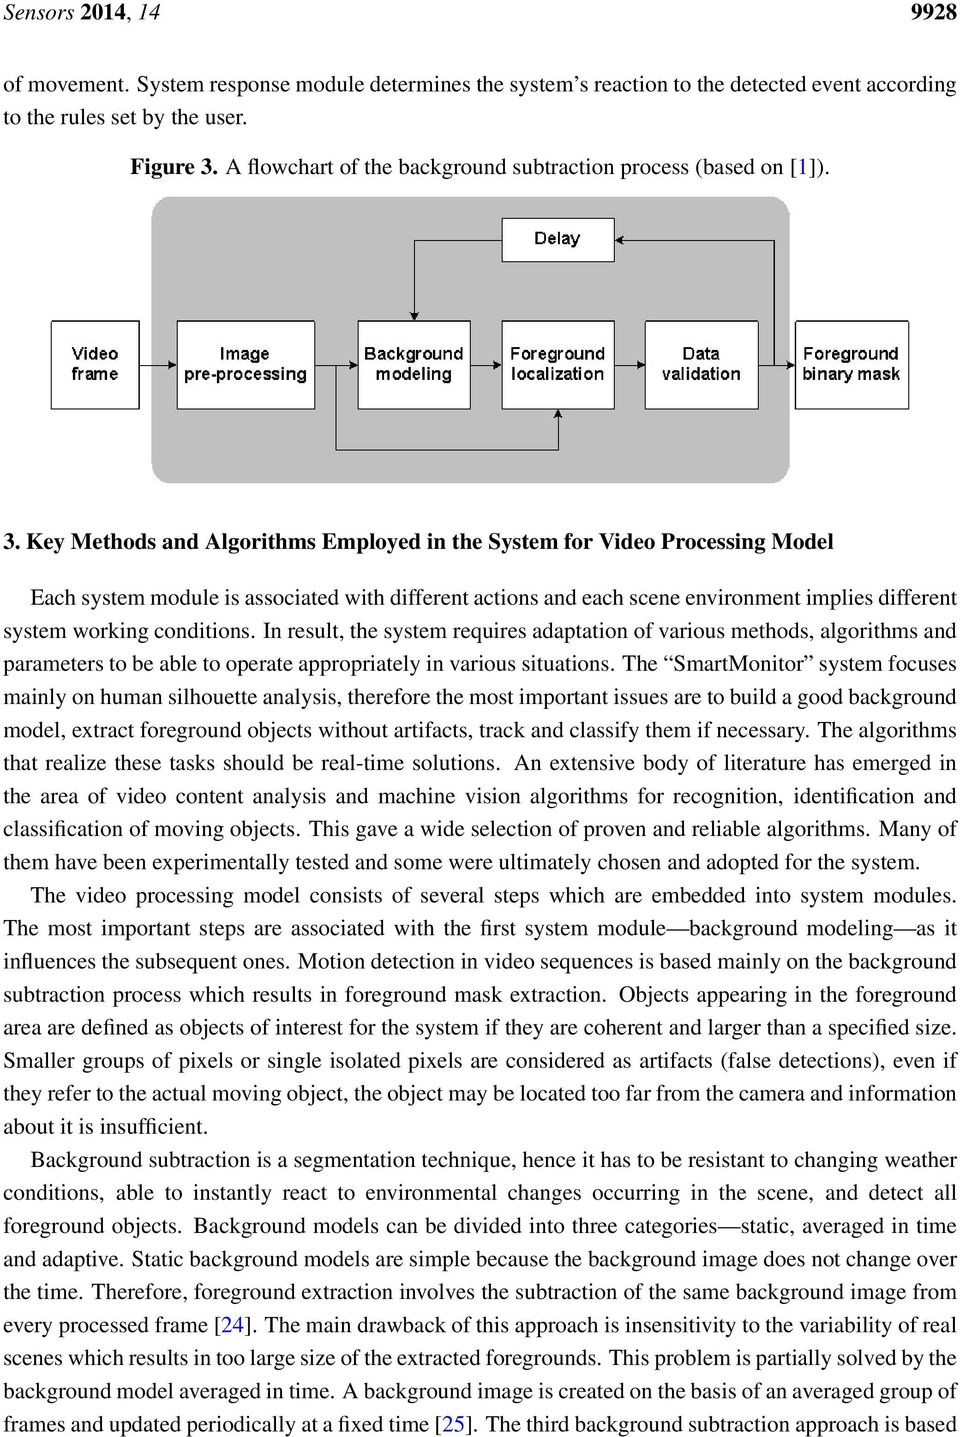 Key Methods and Algorithms Employed in the System for Video Processing Model Each system module is associated with different actions and each scene environment implies different system working